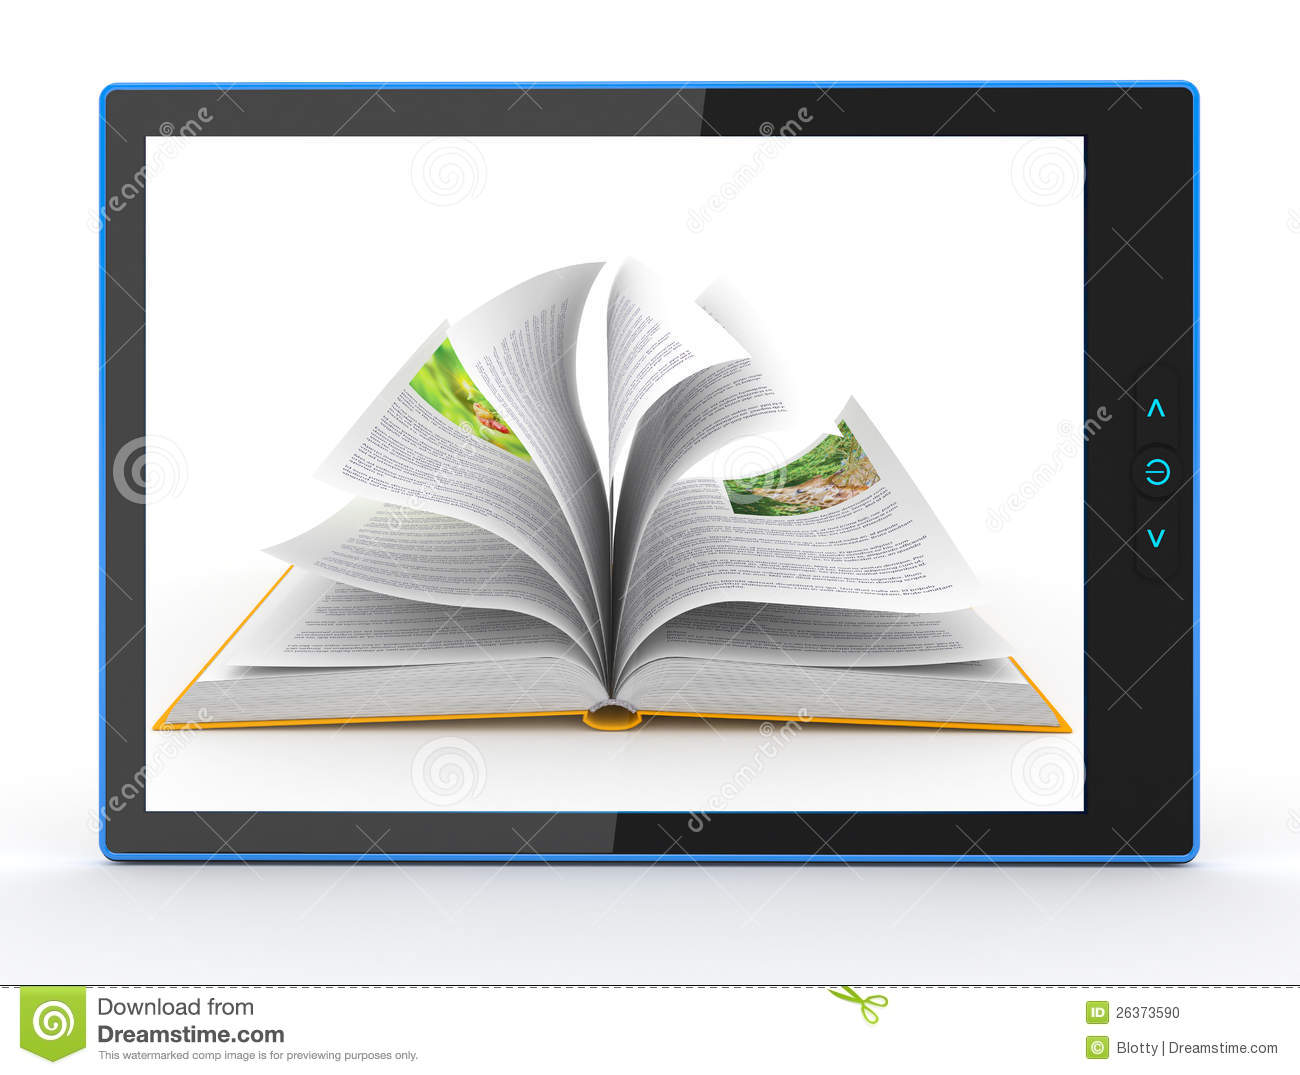 how to read ebooks on tablet